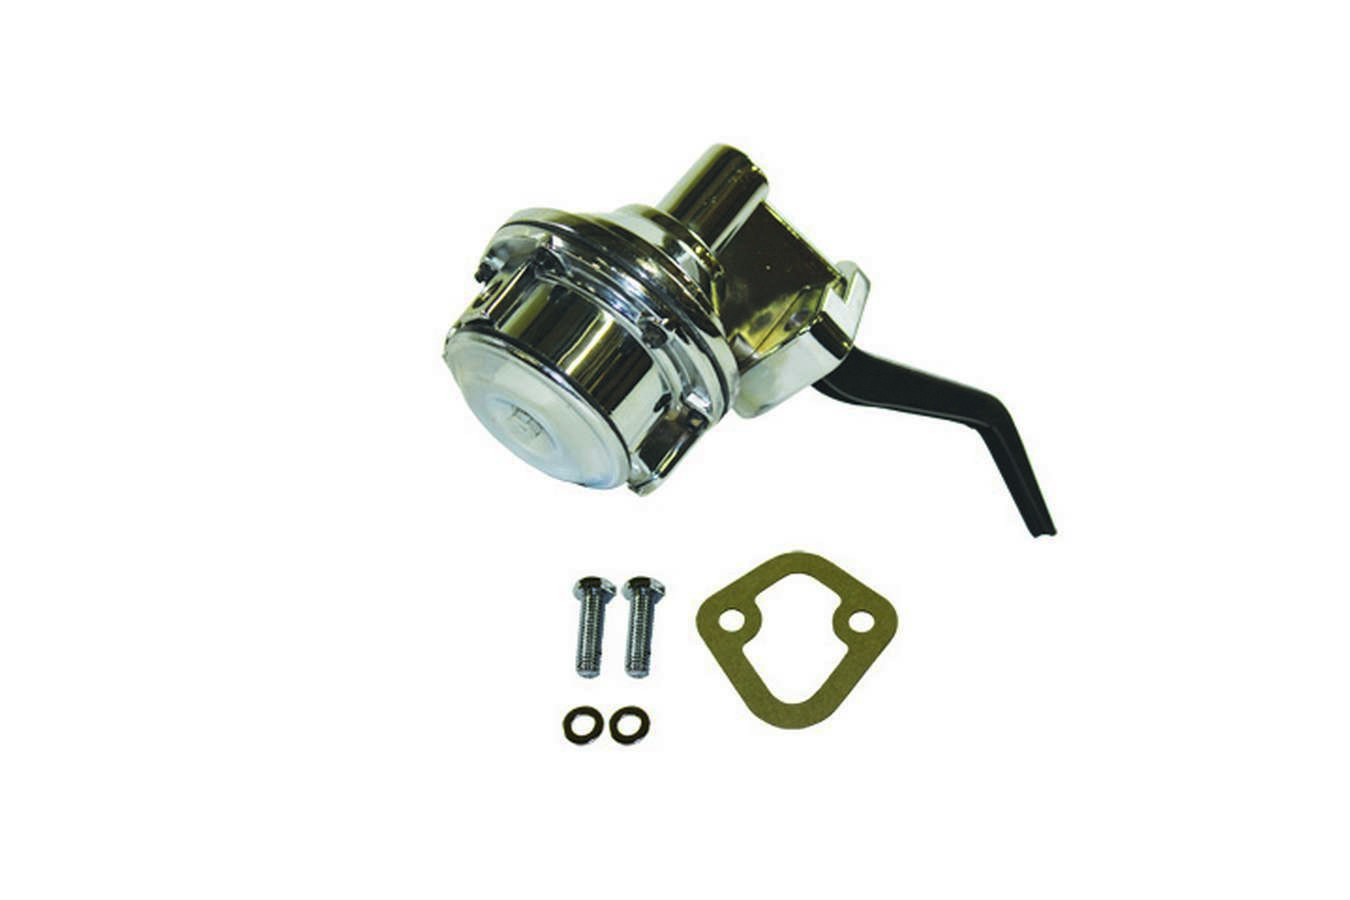 Specialty Chrome 3152 Fuel Pump, Mechanical, 80 gph, 8 psi, 1/4 in NPT Female Inlet, 1/4 in NPT Female Outlet, Aluminum, Chrome, Gas, Small Block Ford, Each